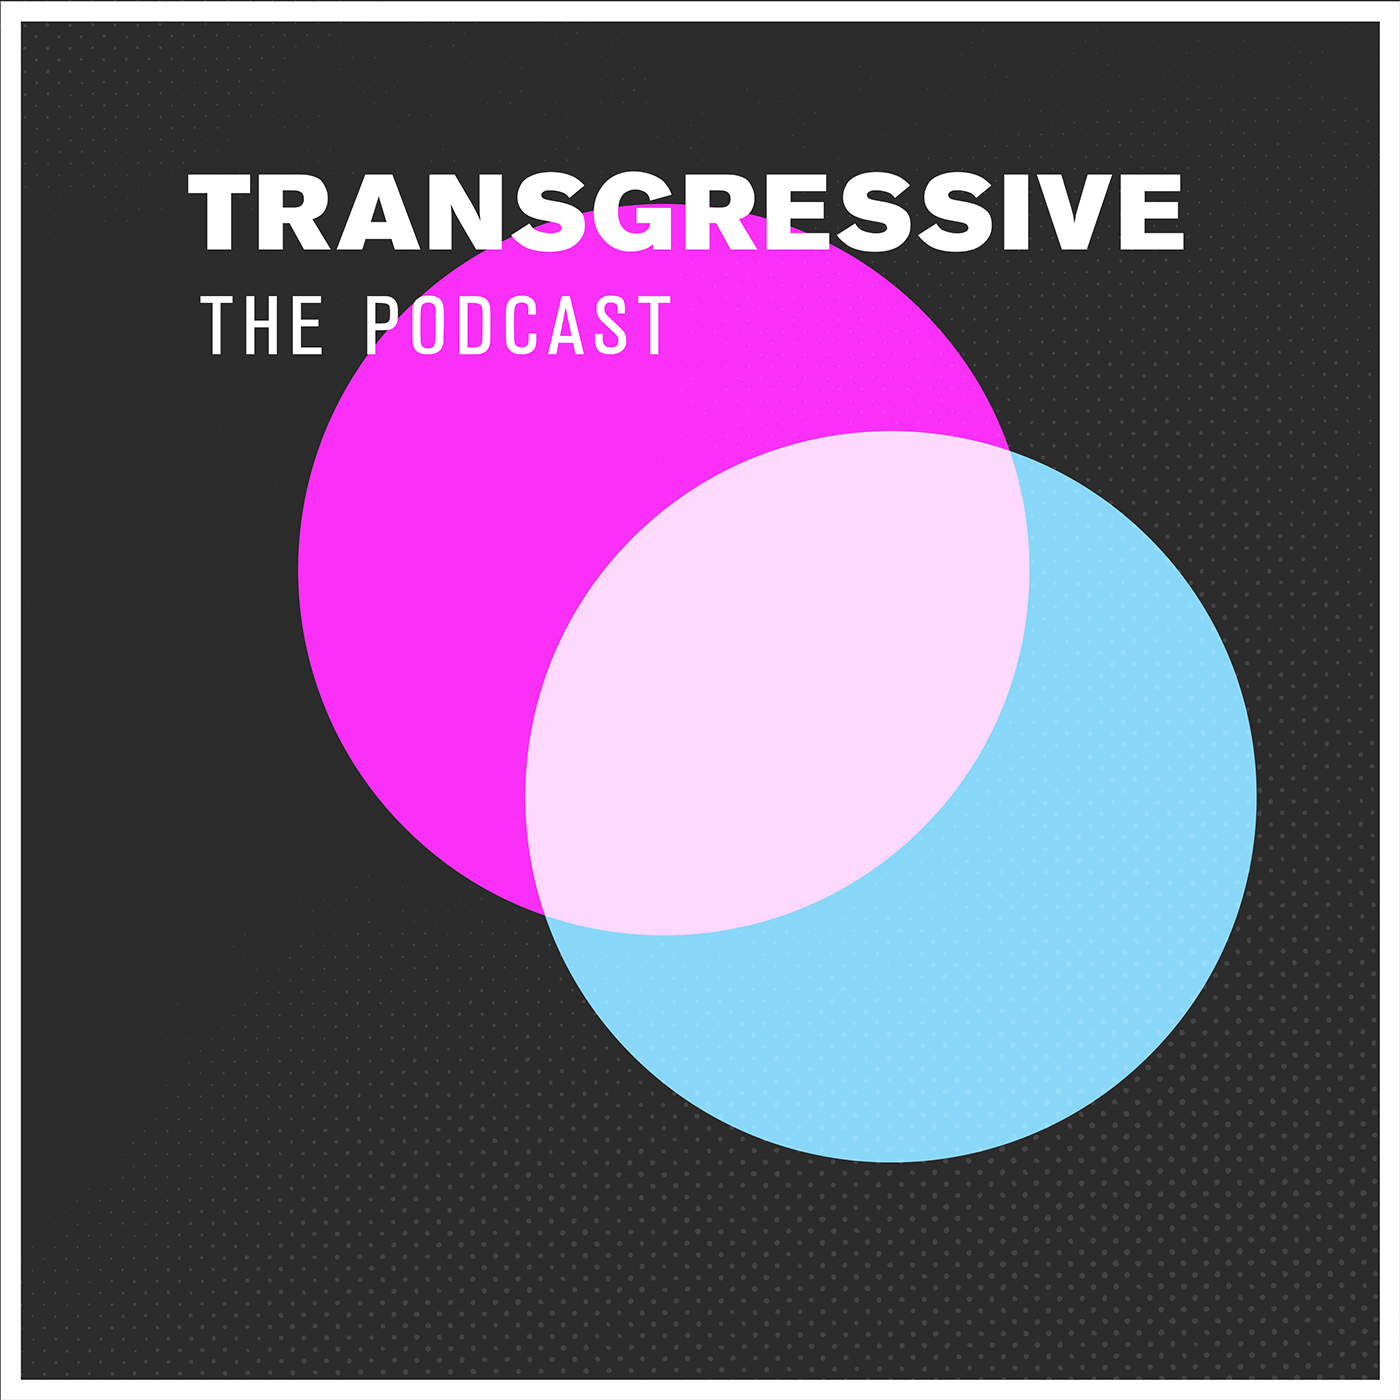 Episode 06: It's Okay to Be Trans with Paula Buls